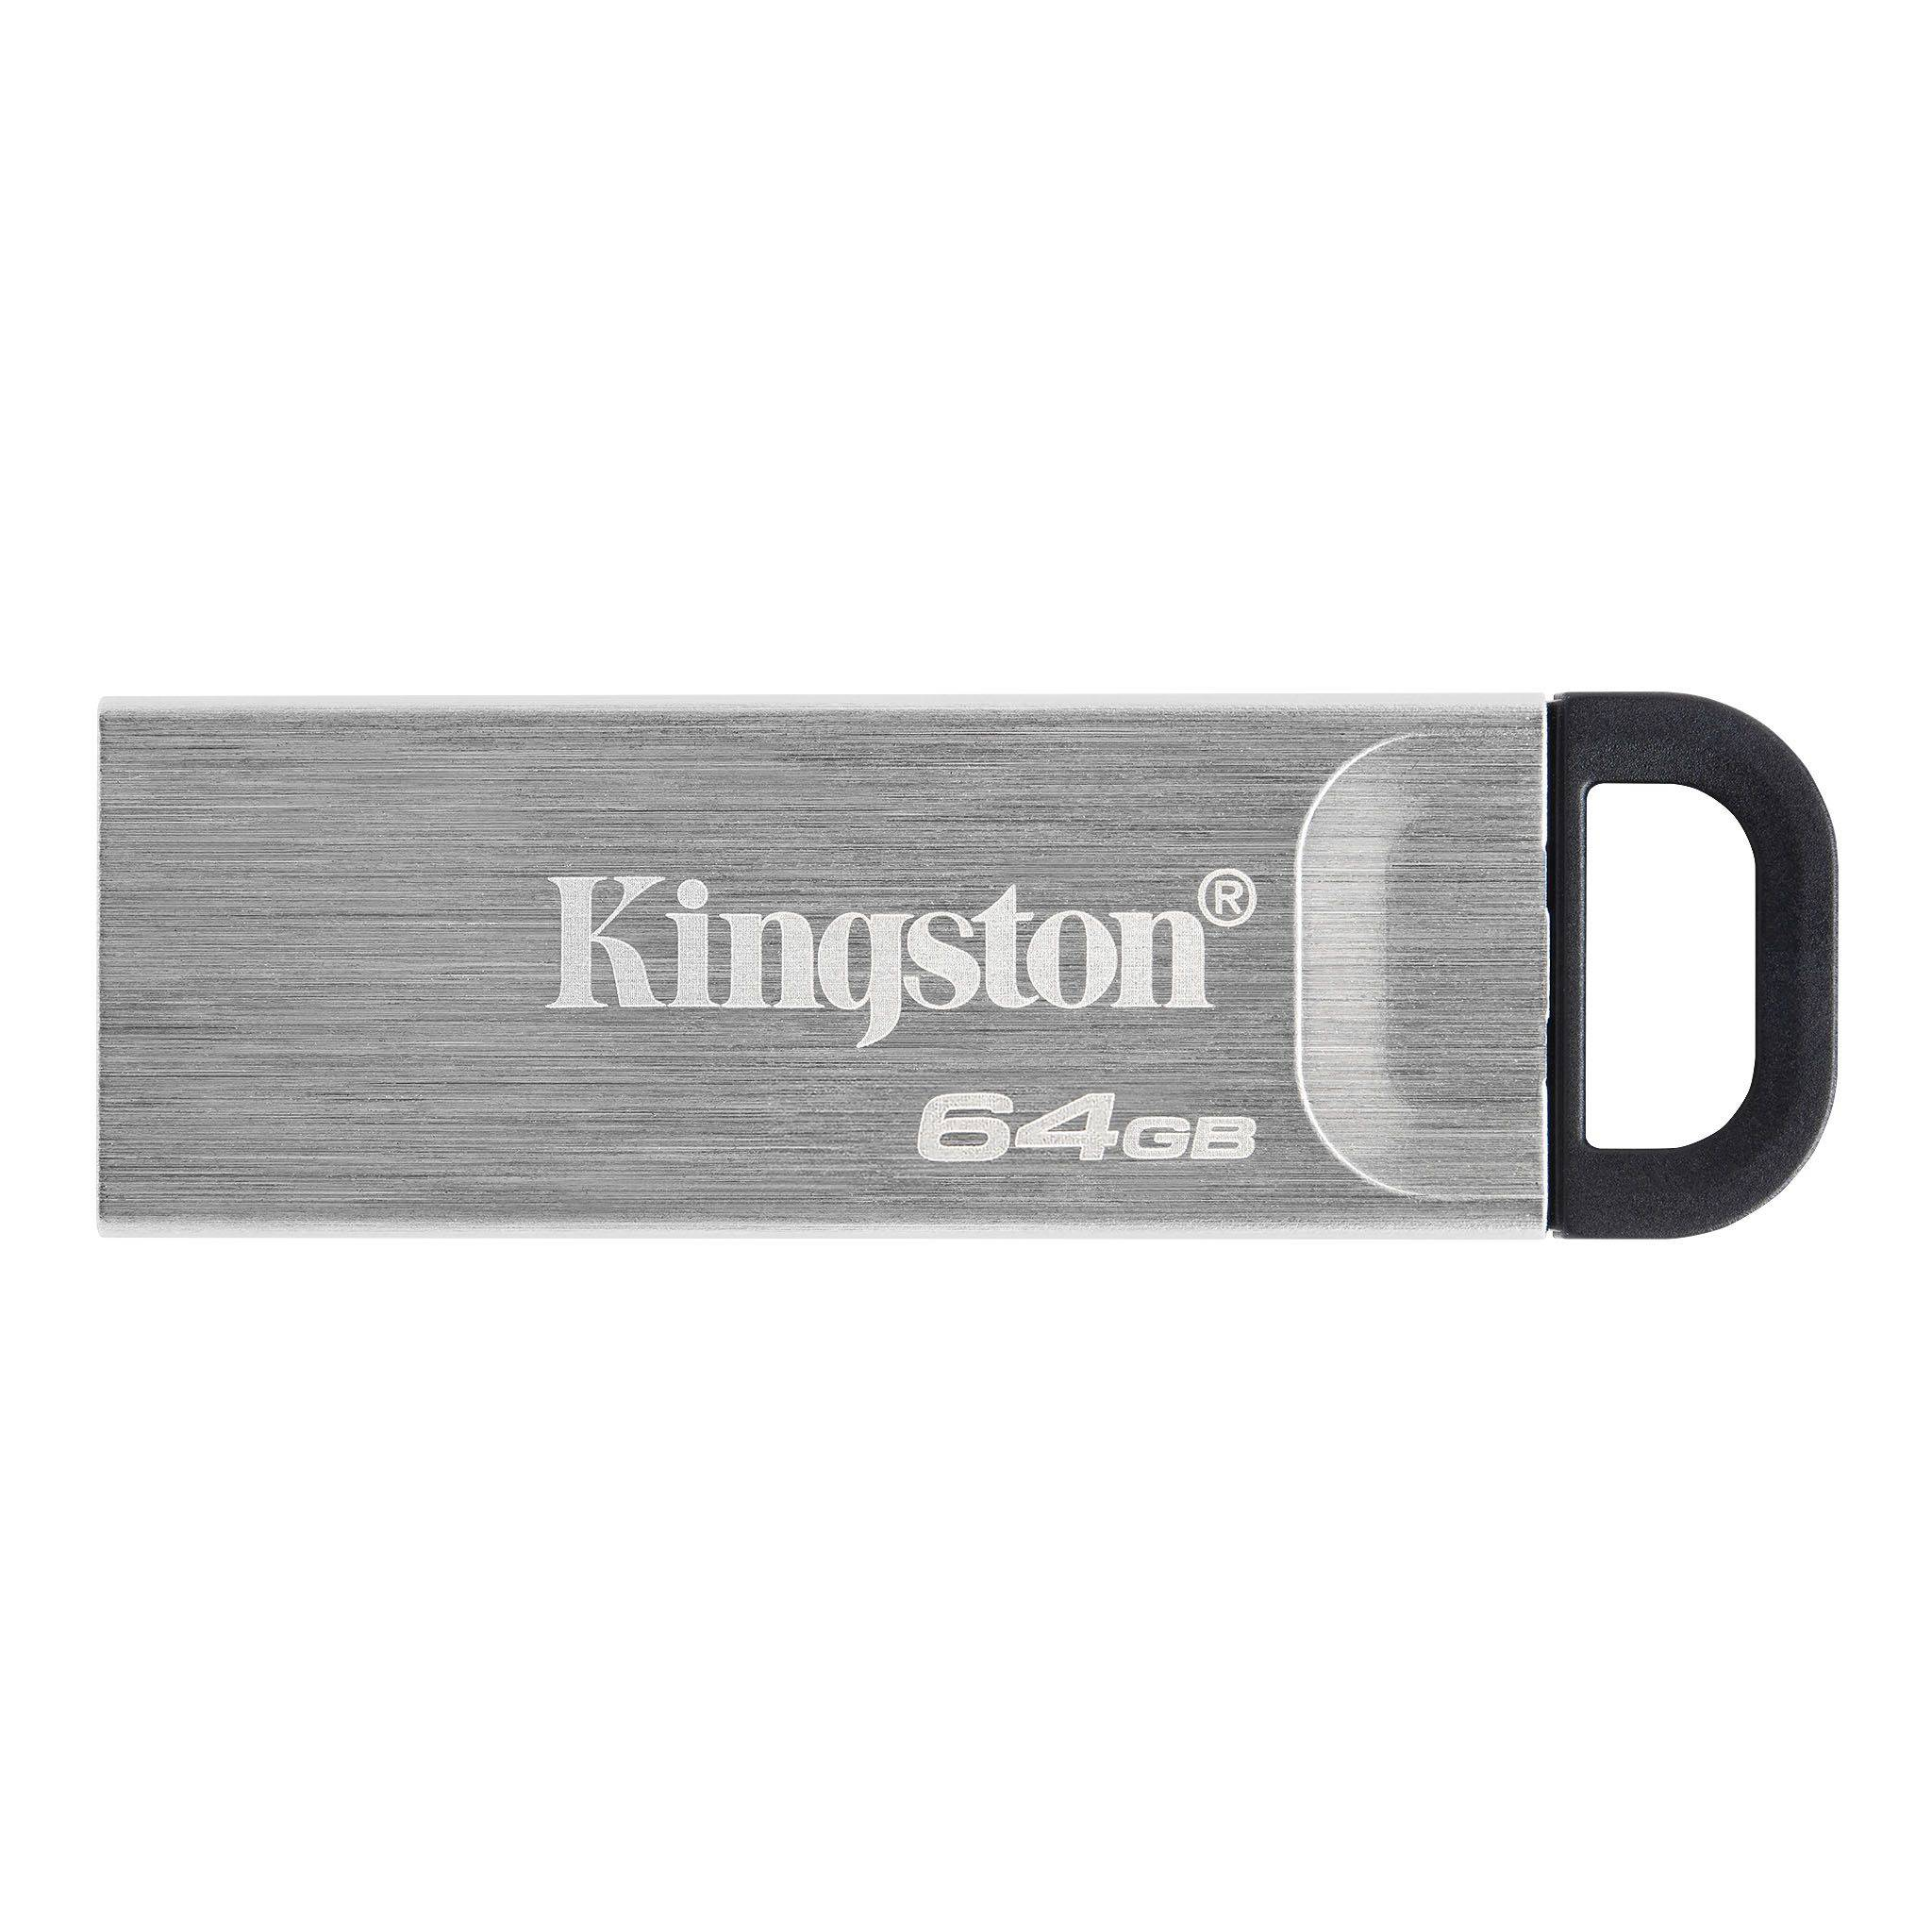 64GB Kingston USB 3.2 (gen 1) DT Kyson